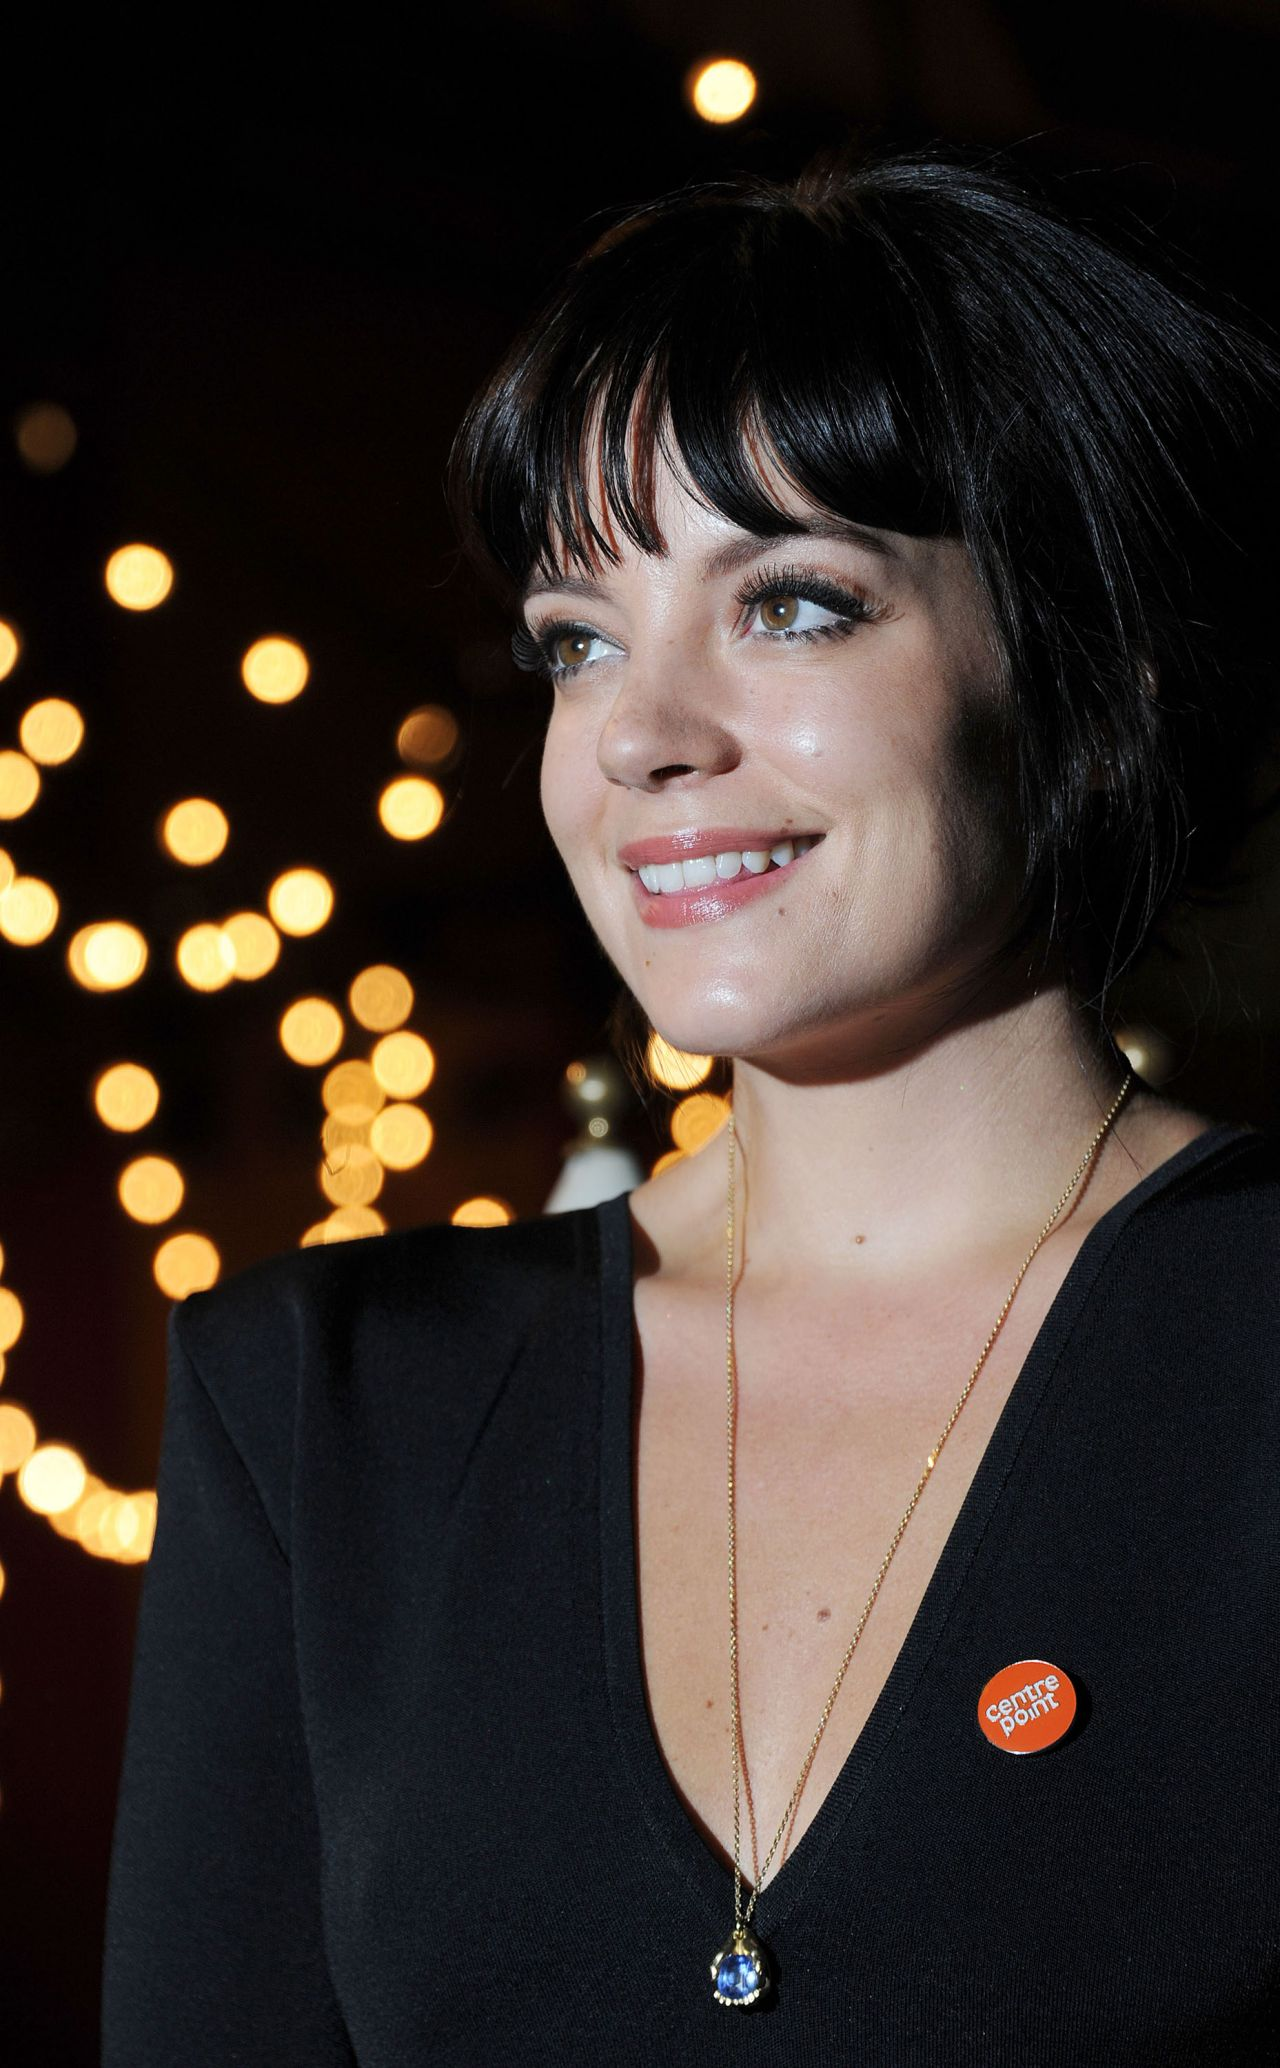 Lily Allen Wearing Roland Mouret Dress At The Ultimate Pub Quiz In London February 2014